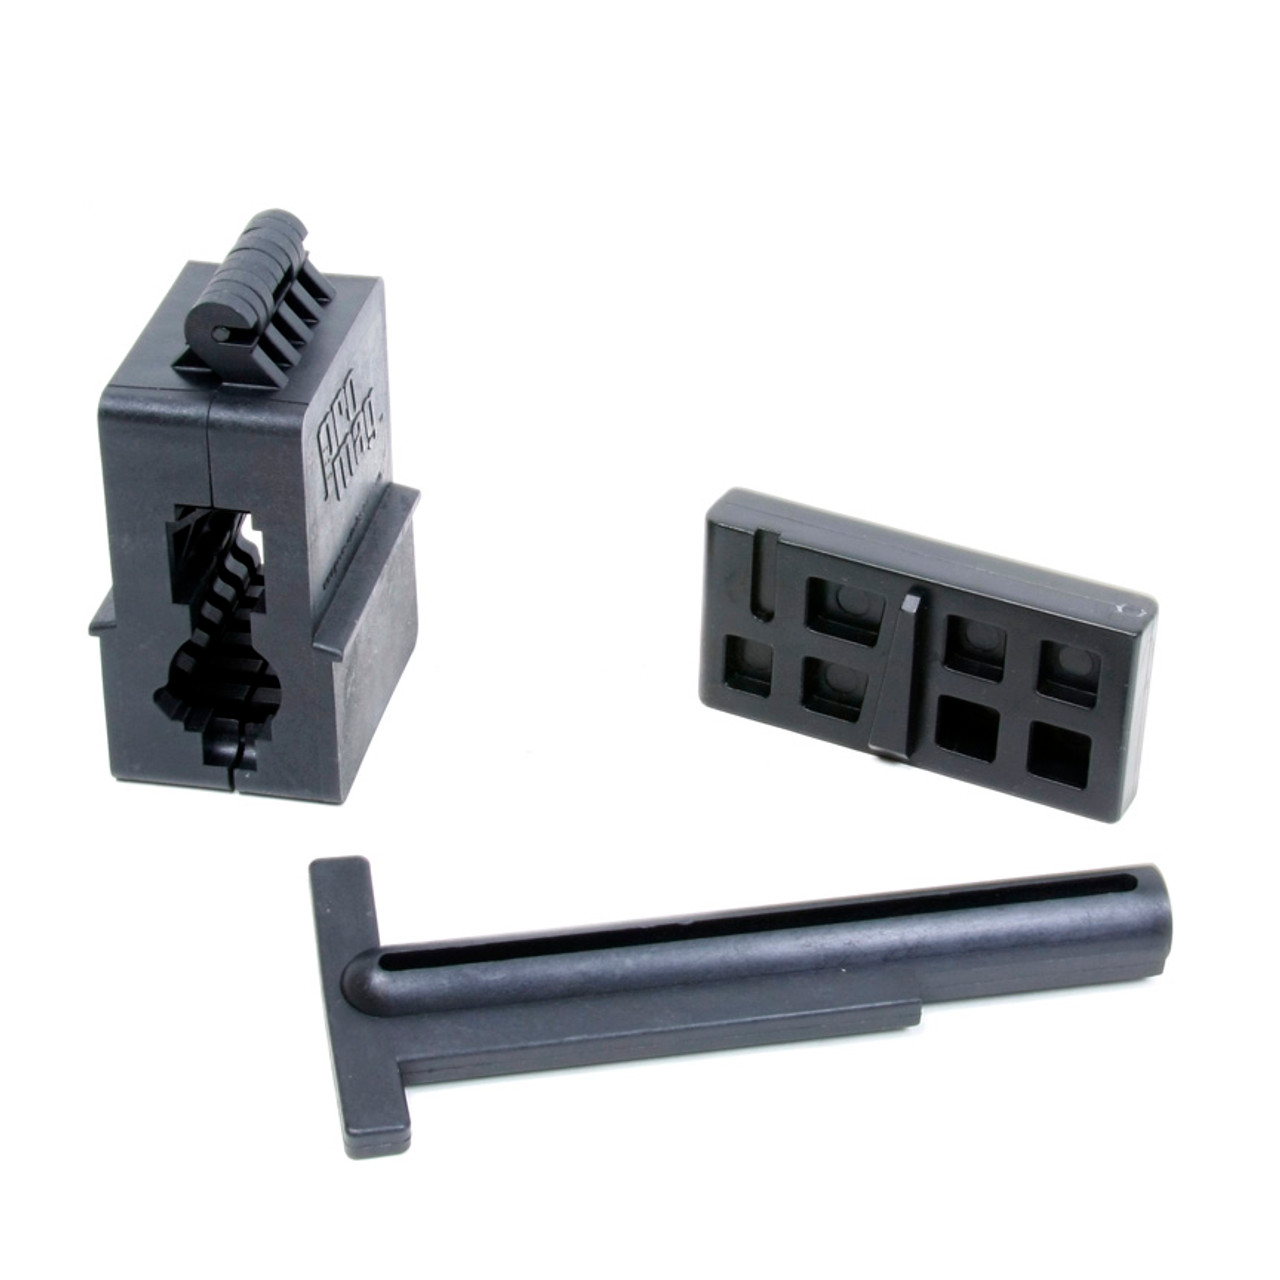 AR-15® / M16 Upper and Lower Receiver Magazine Well Vise Block Set - Black Polymer